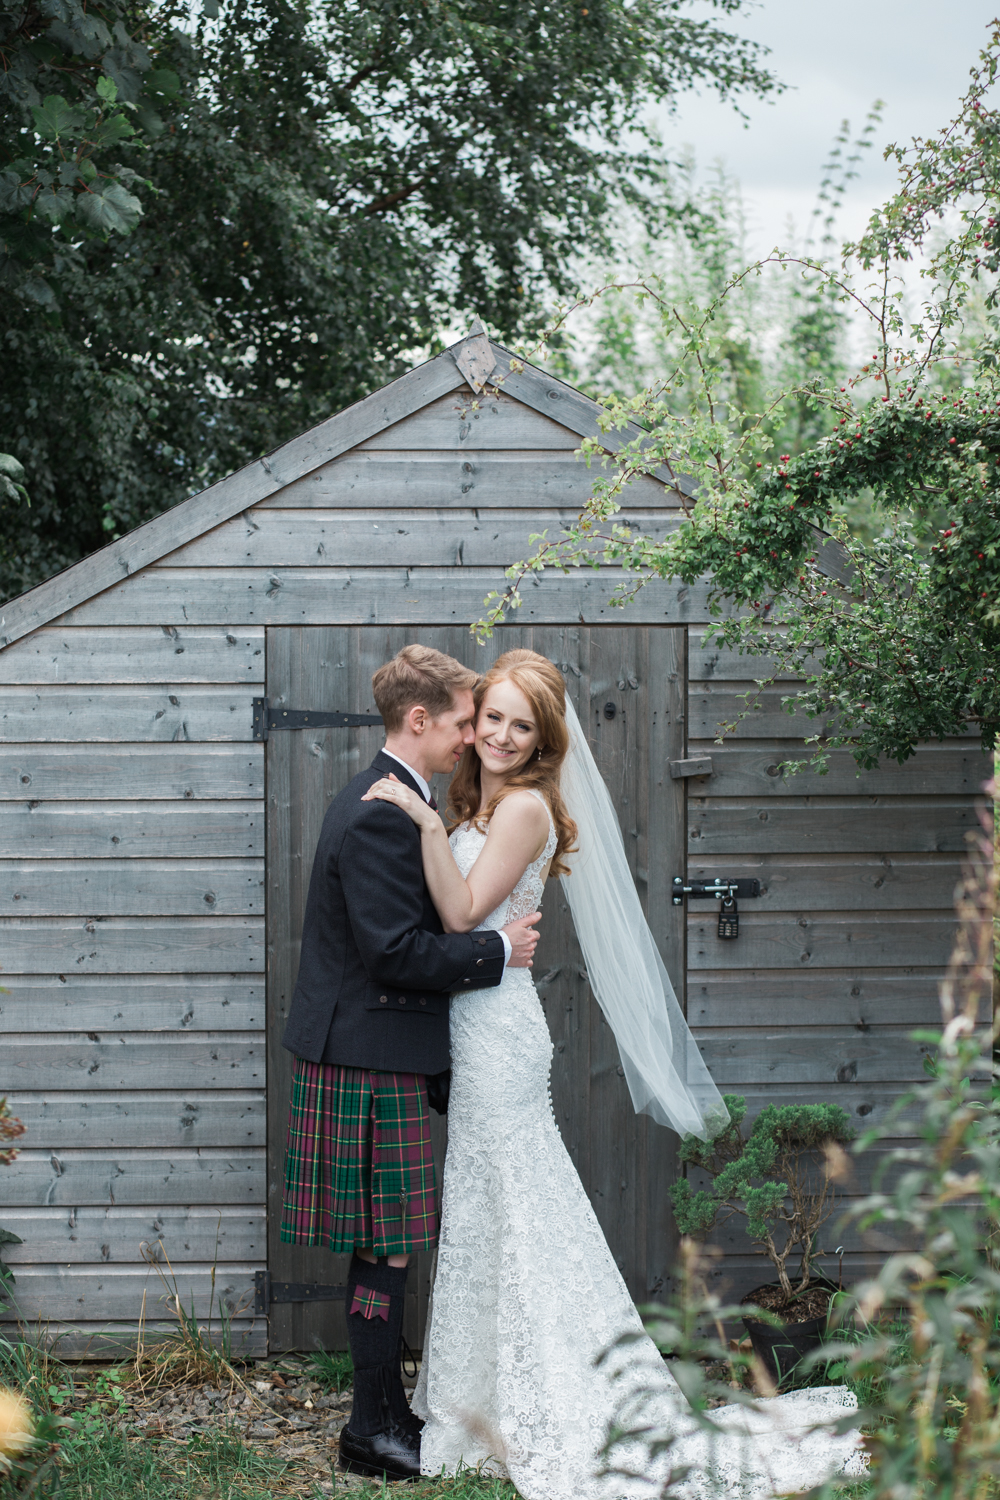 wedding photographer in Aberdeen, Aberdeen wedding photographers, woodend barn wedding, Banchory wedding